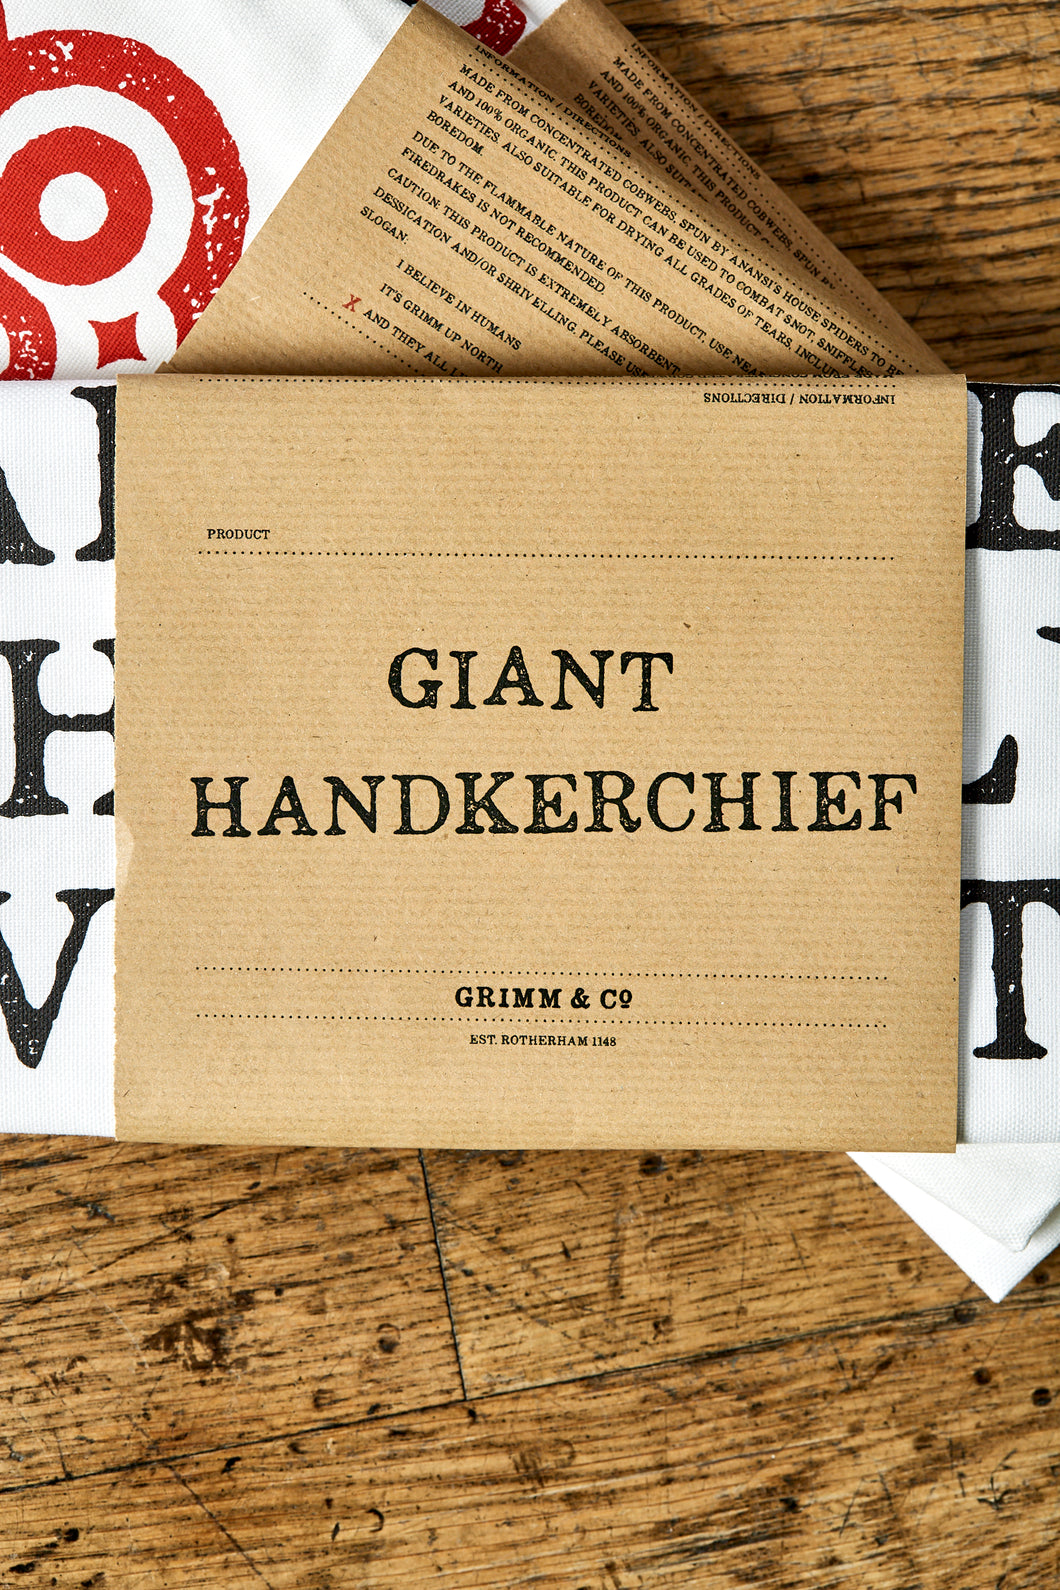 Image shows the kraft paper label of the Giant Handkerchief, otherwise known as a cotton tea towel.